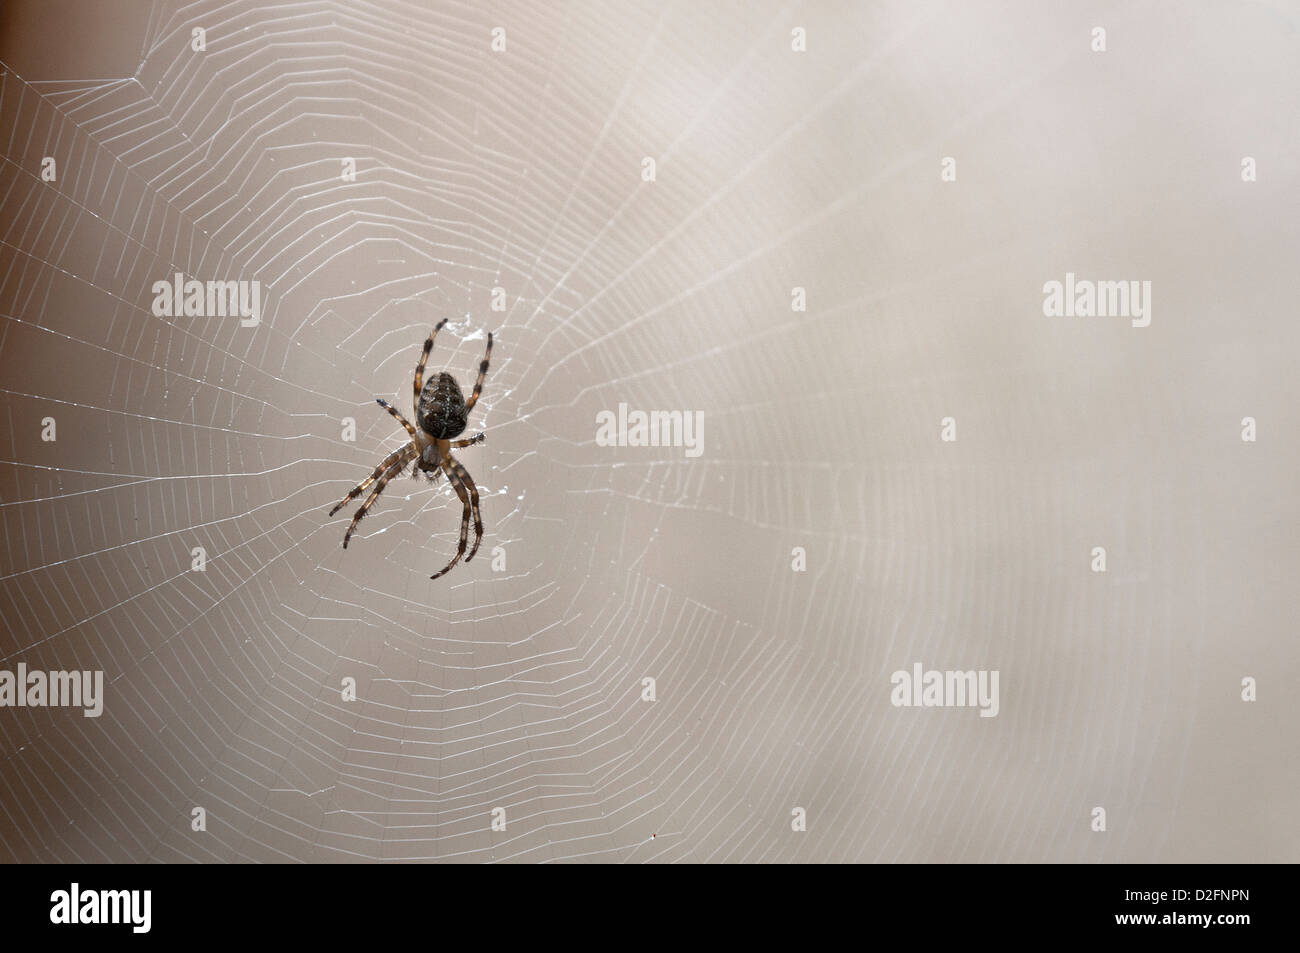 Common garden spider on its spider web, UK - Stock Image